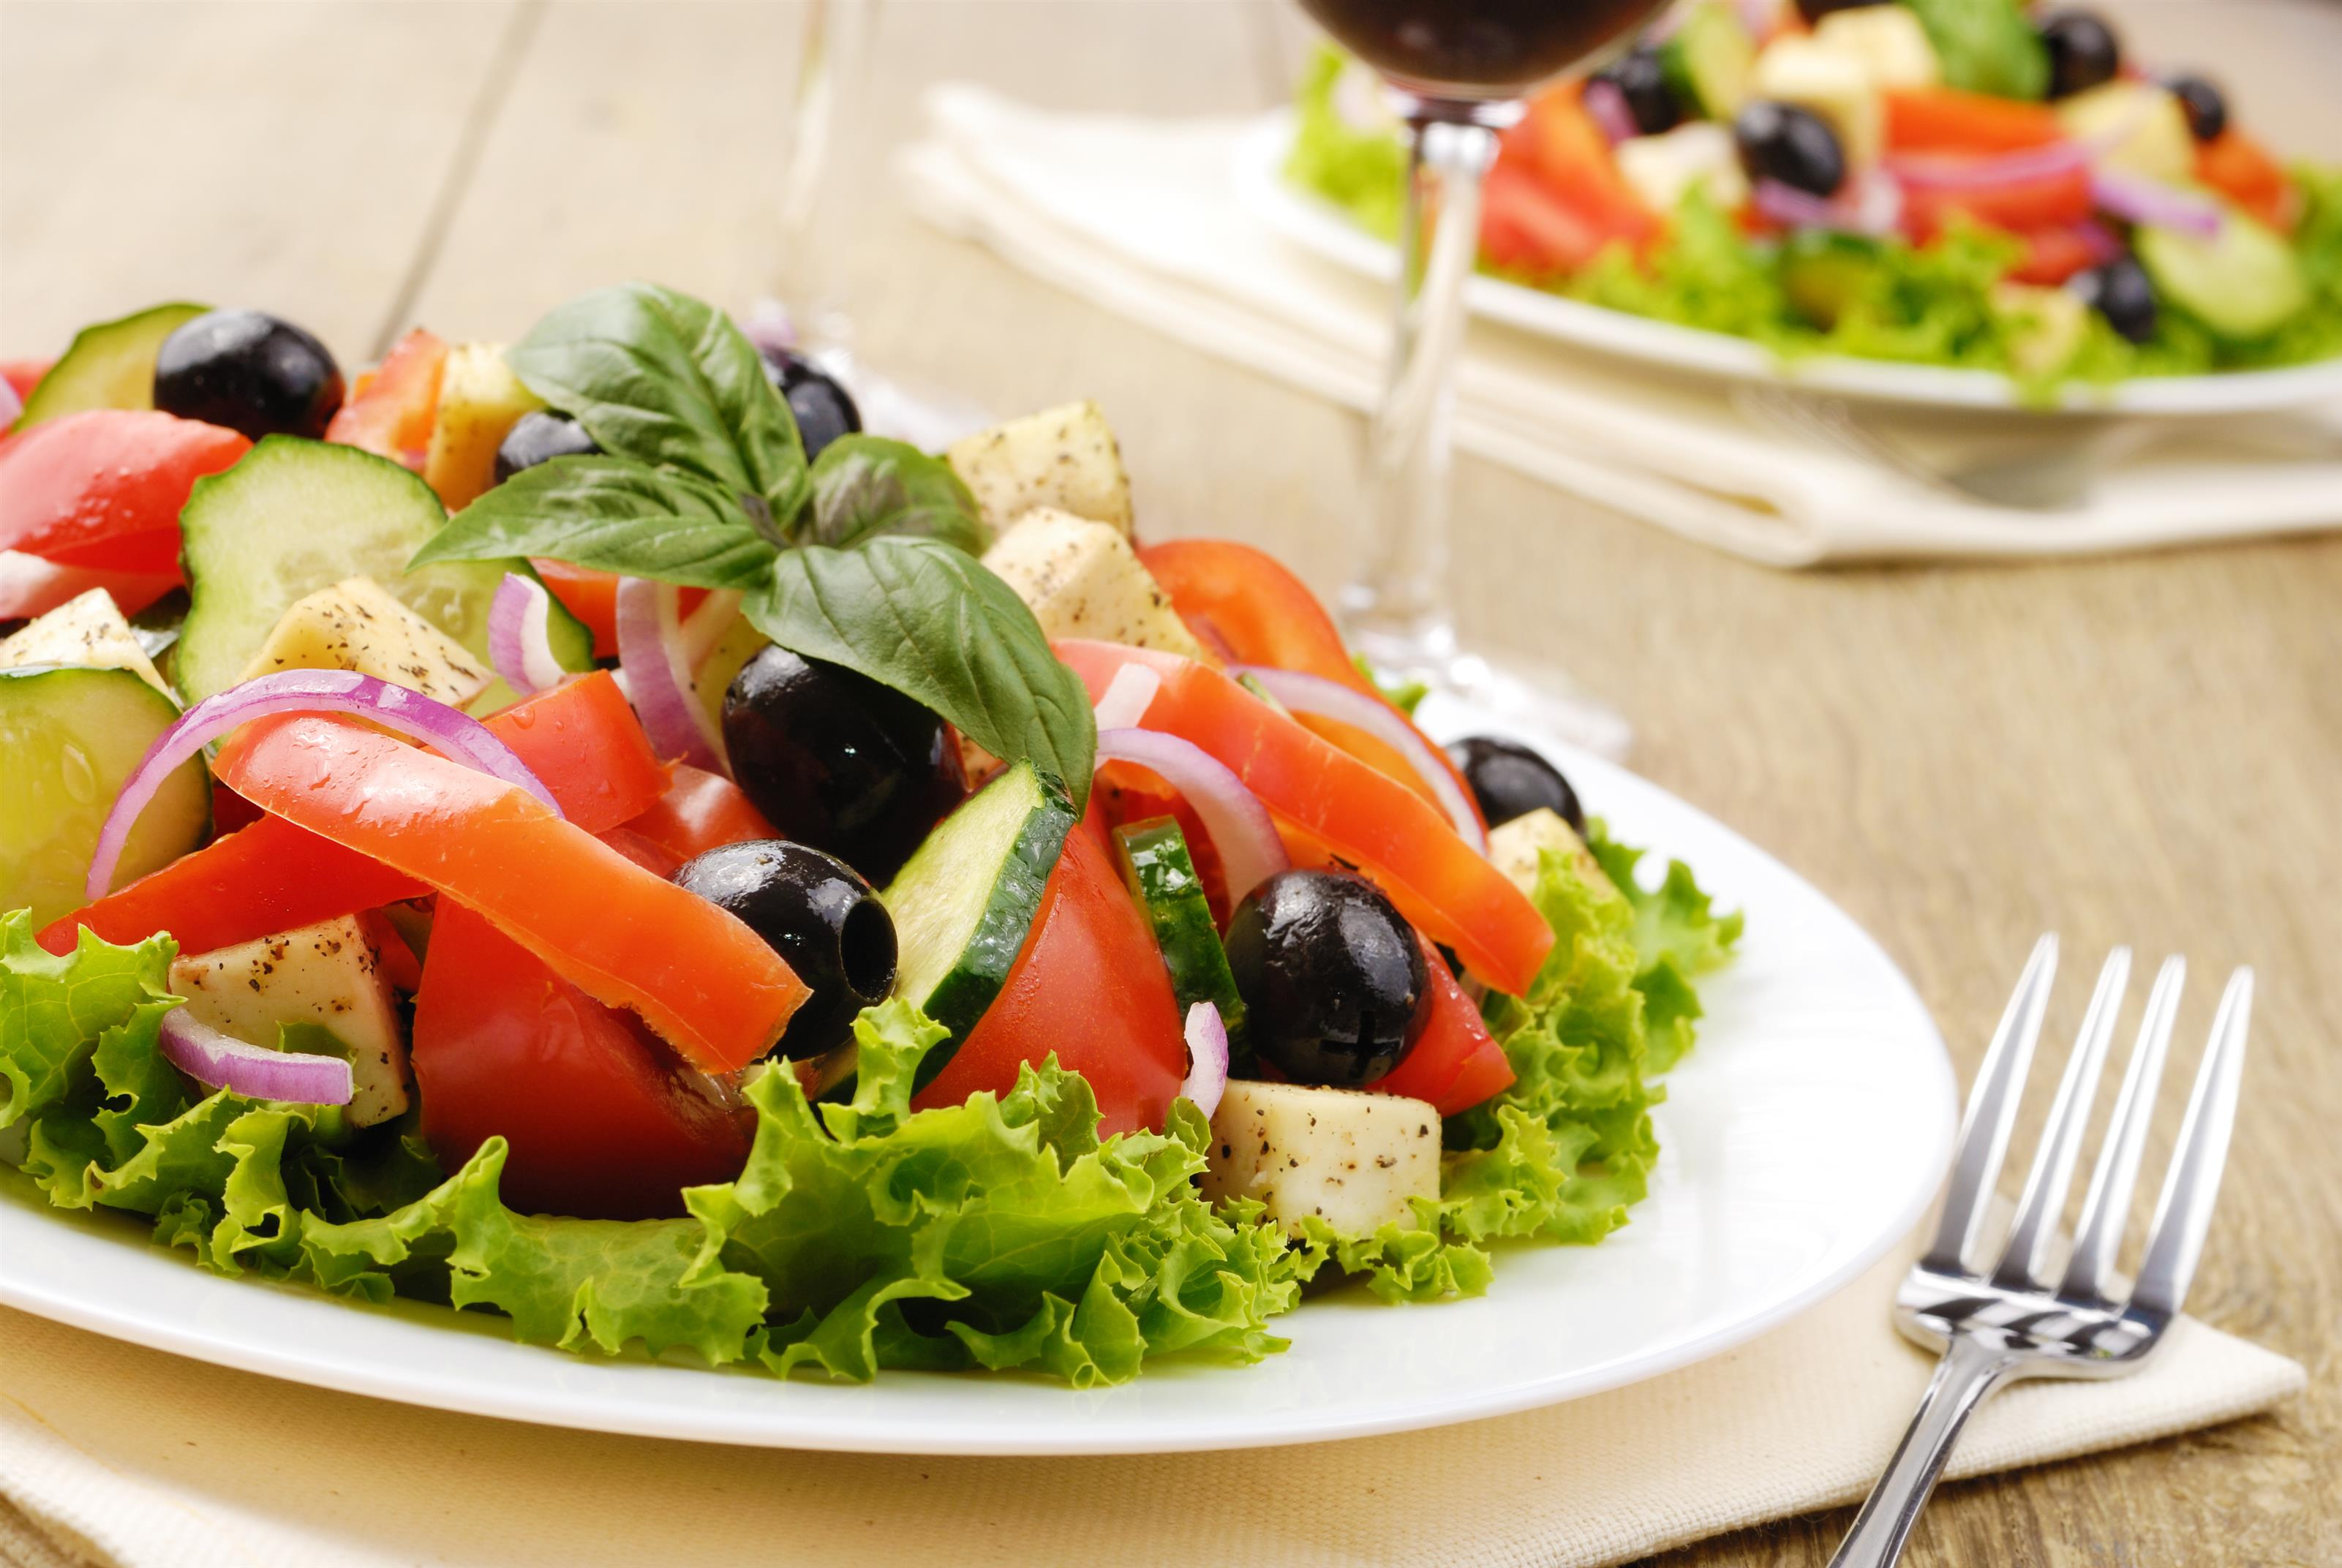 salad with a glass of wine and a fork